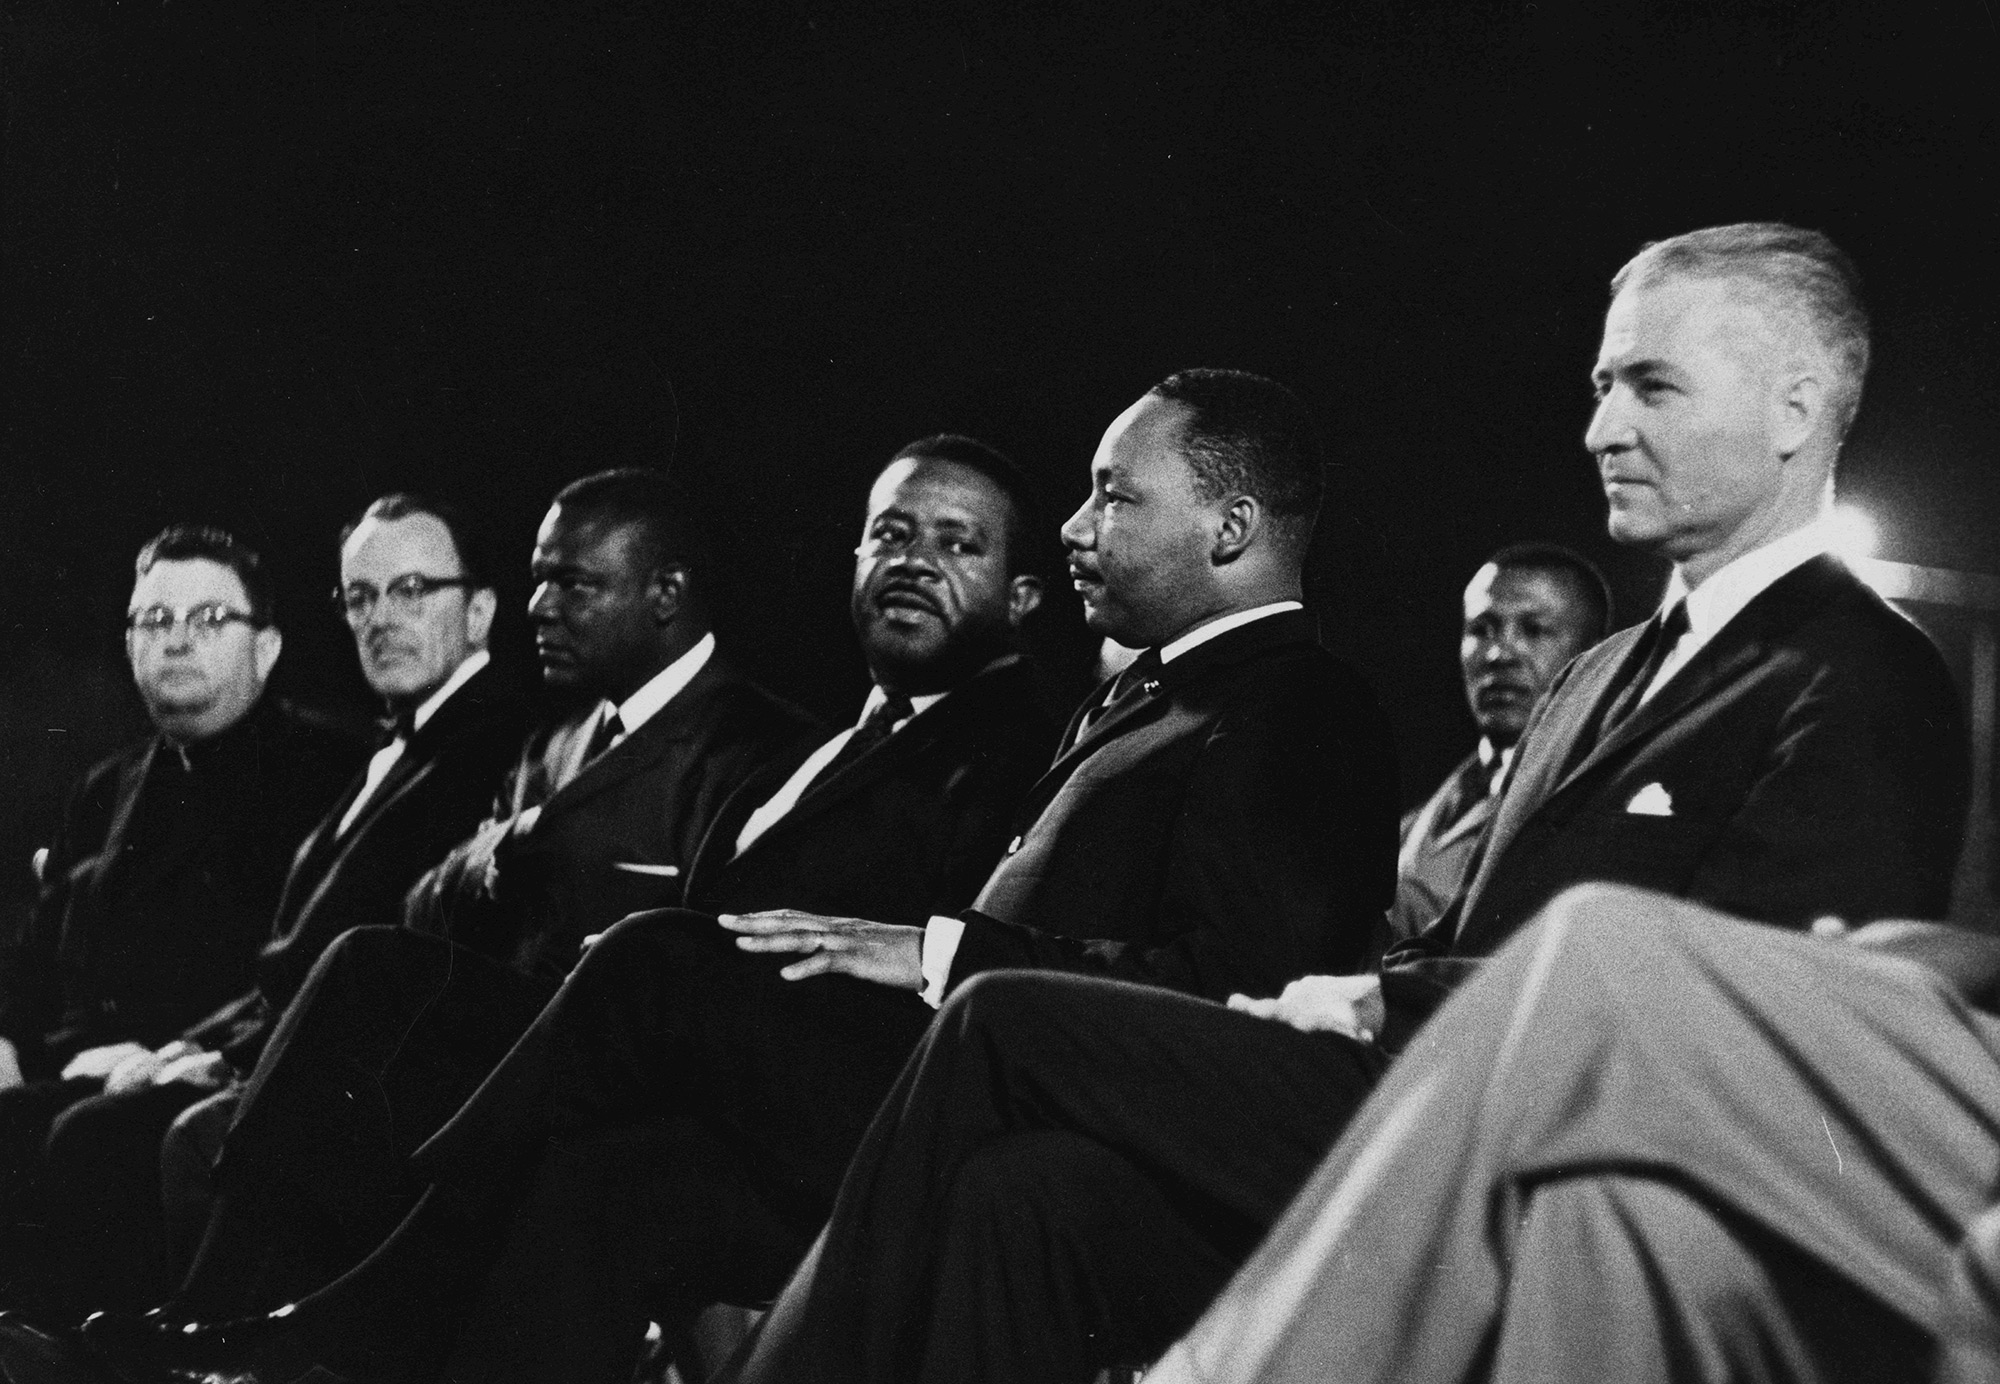 MLK and other men sitting in a row